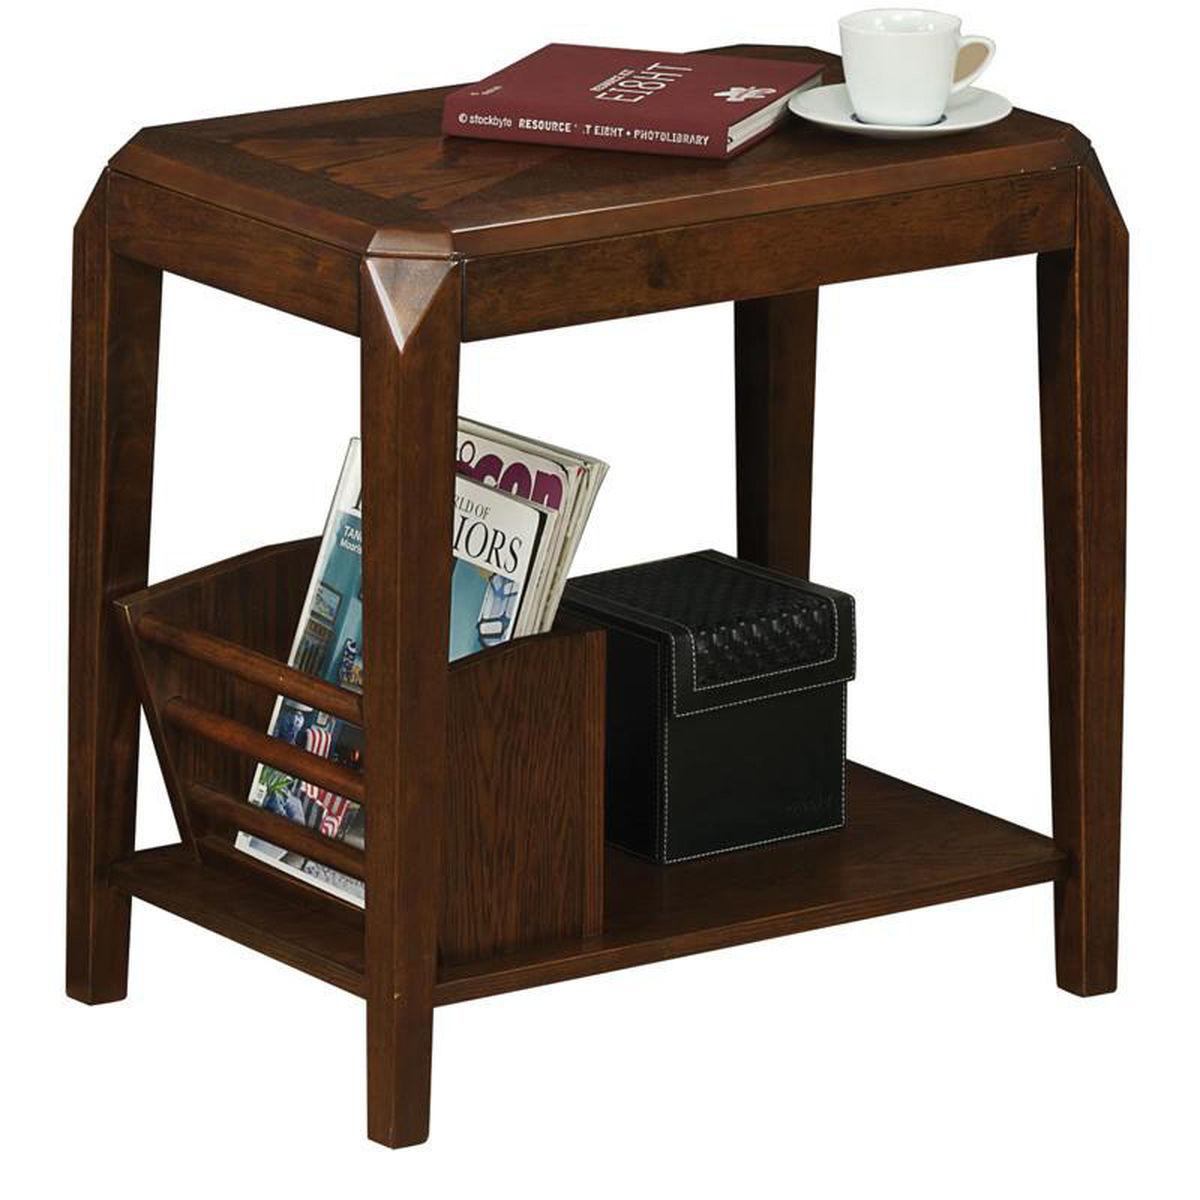 brown oak accent table bizchair monarch specialties msp main with drawer and shelf our beveled corner storage now tool round patio set mirror furniture mid century modern end